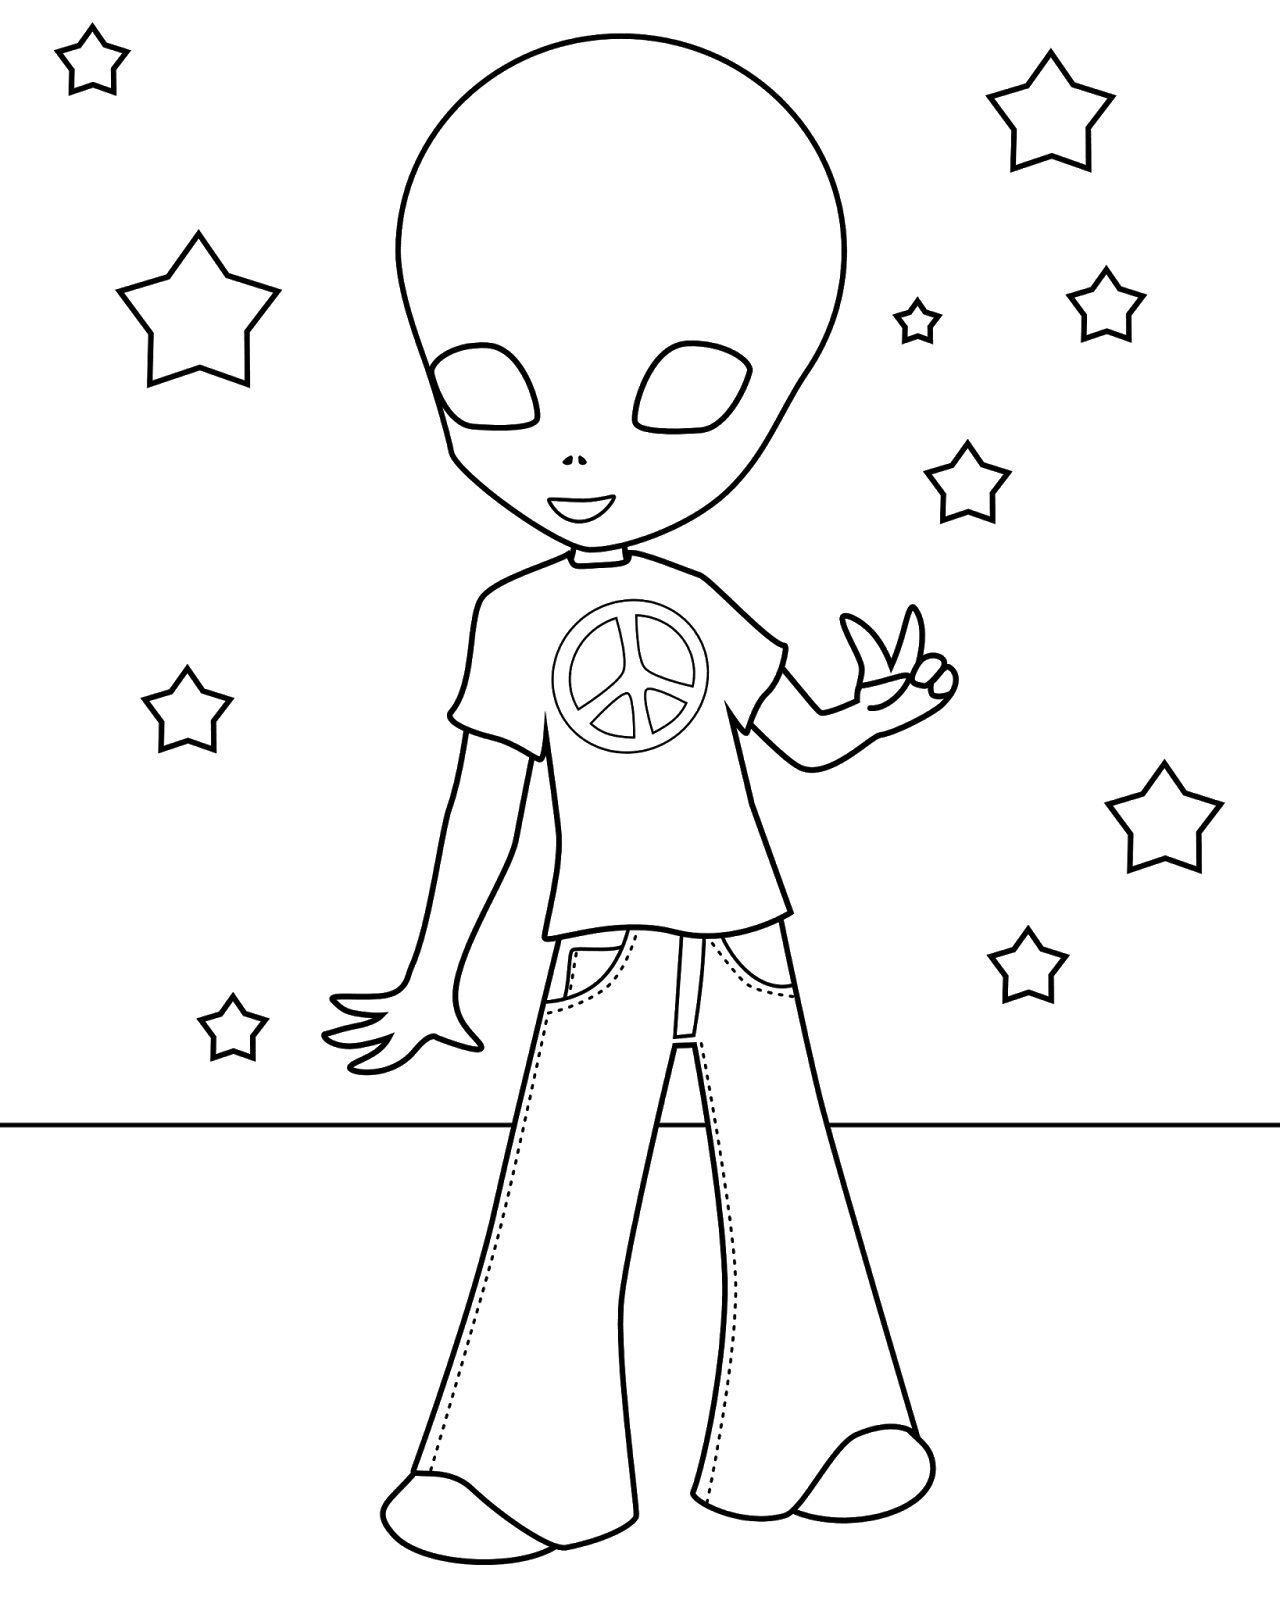 printable alien pictures printable alien coloring pages for kids cool2bkids alien pictures printable